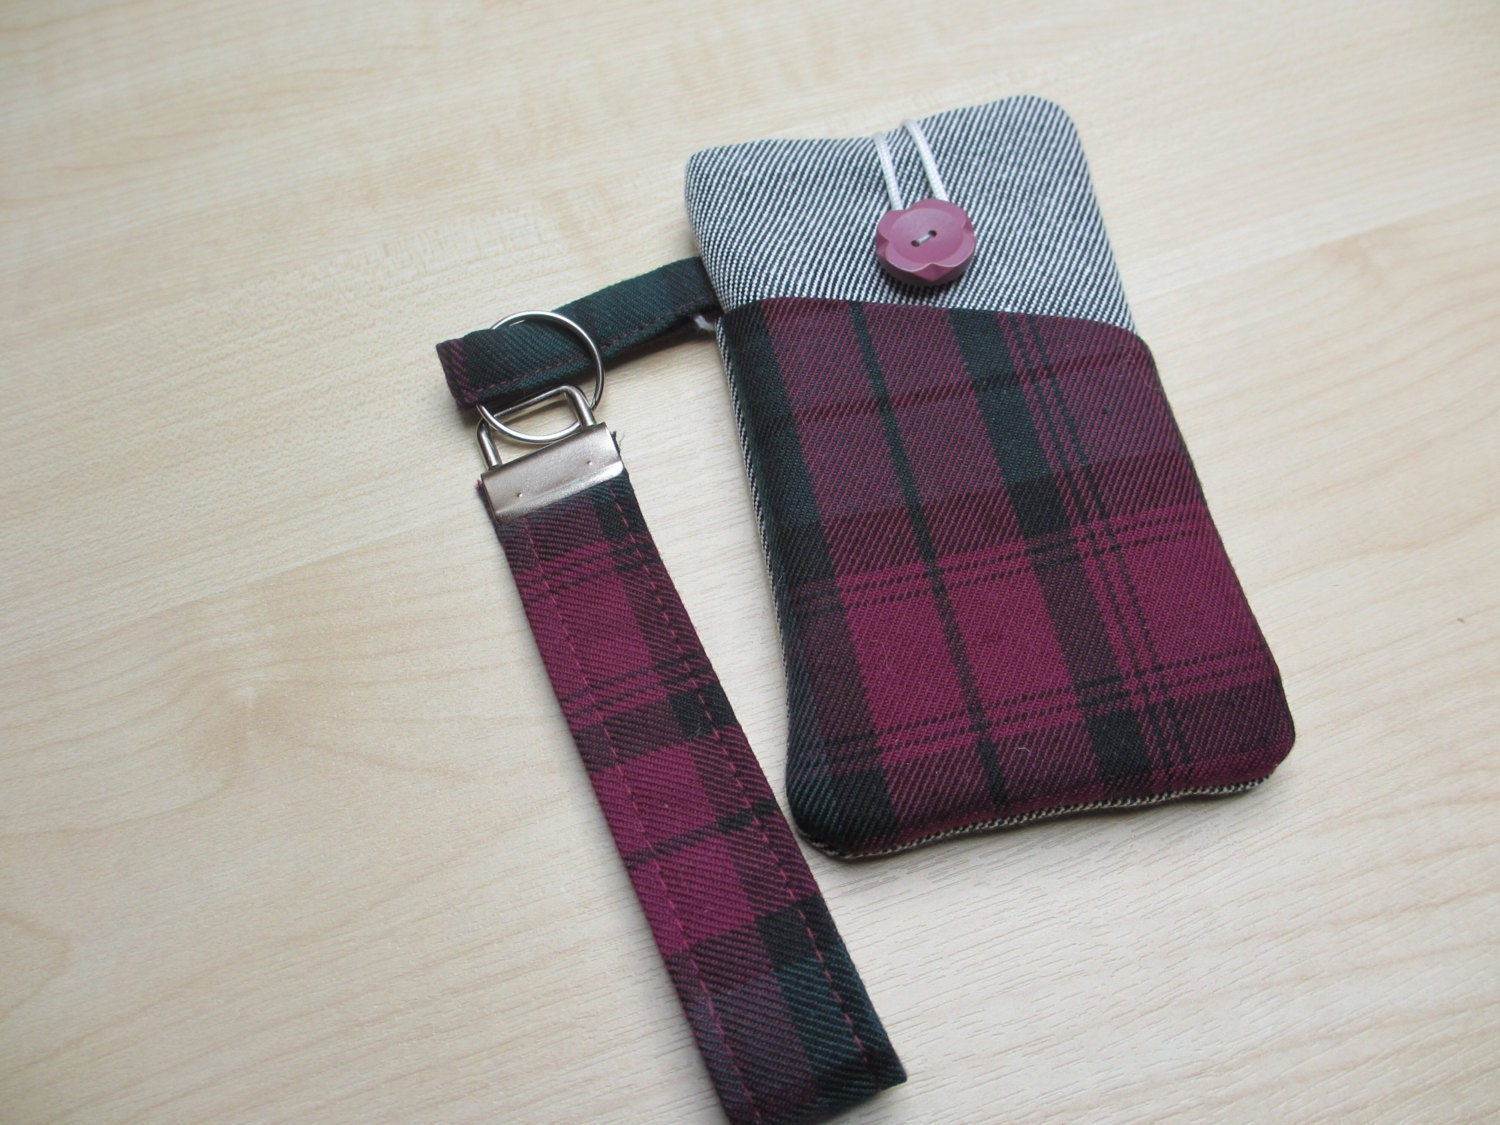 iPod touch caselanyard  tartan phone set denim cell phone Xperia phone sleeve iphone 5 case Galaxy pouch iPhone 5S case wriststrap